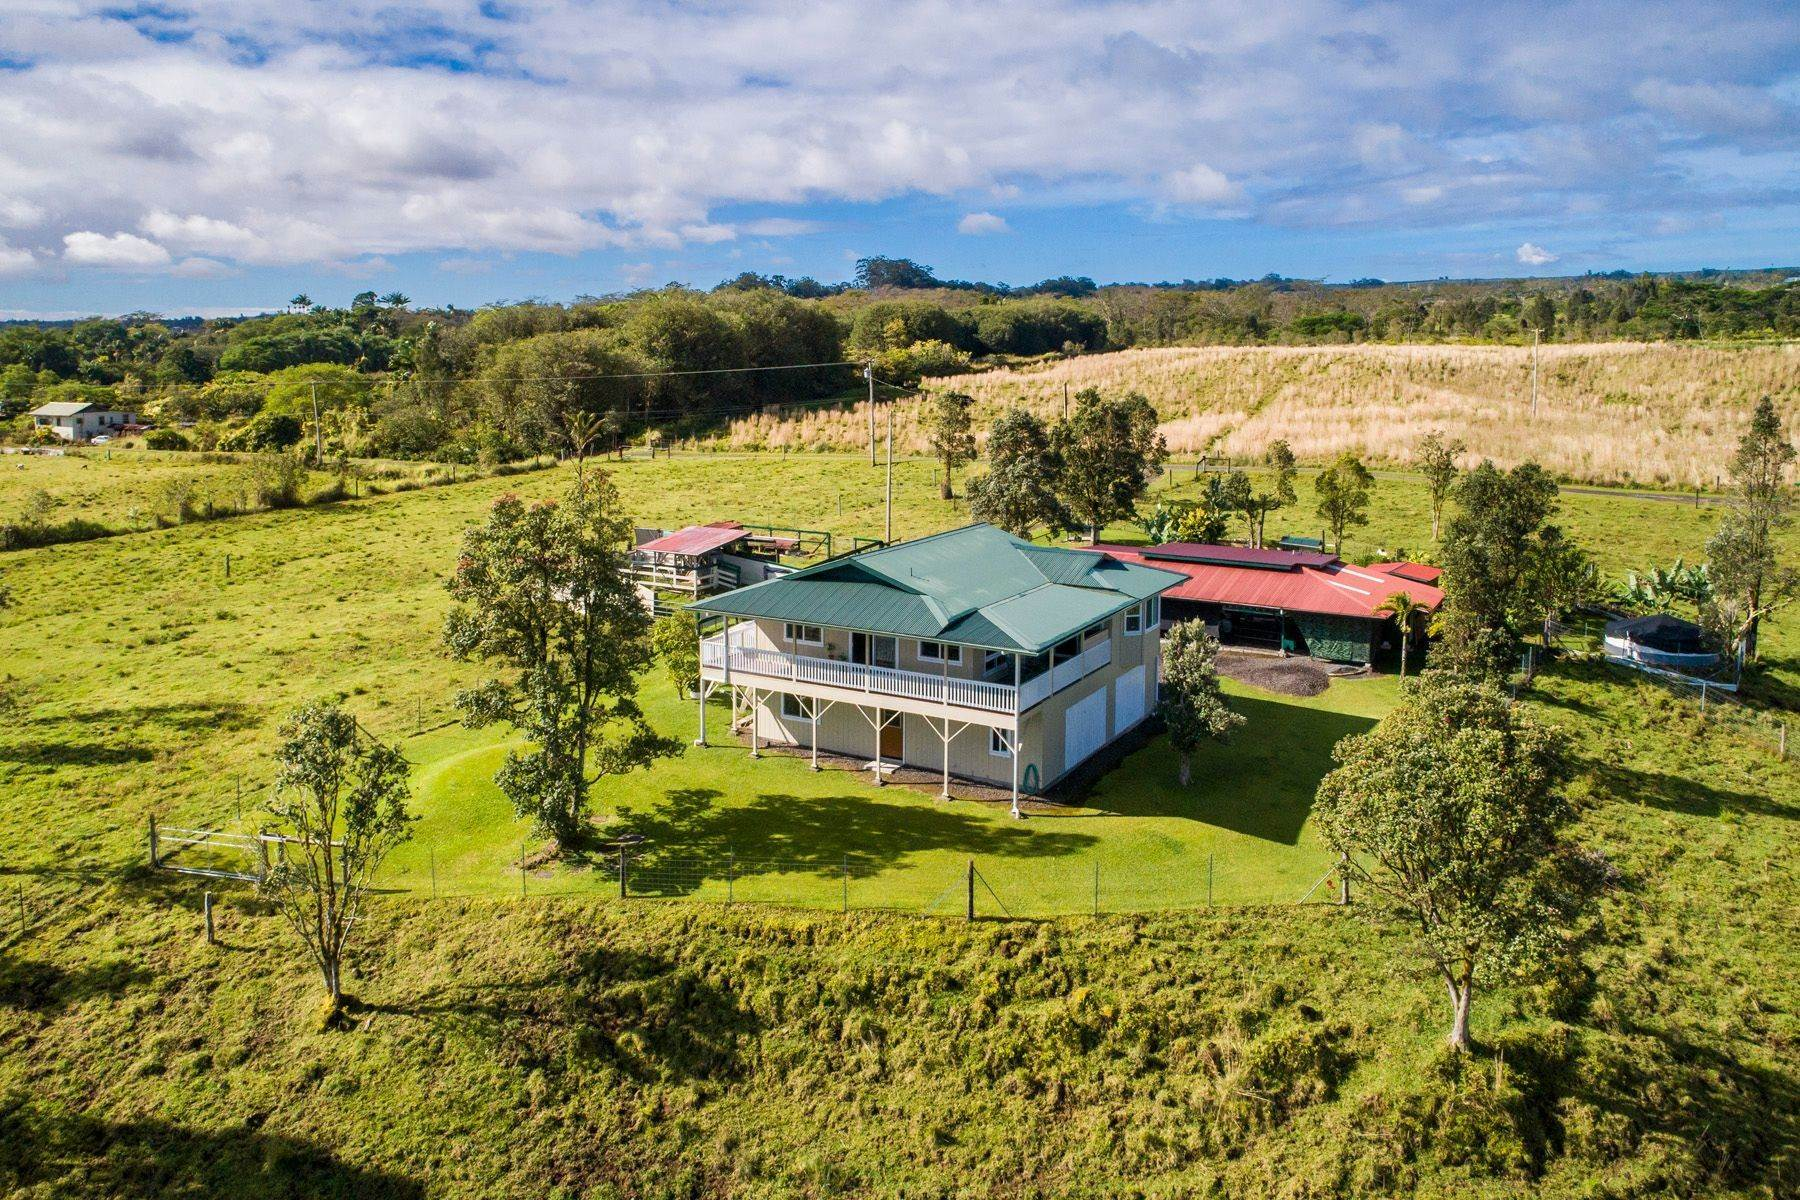 Farm and Ranch Properties 为 销售 在 18-4060 Hale Puu Pueo Place, Mountain View, HI 96771 18-4060 Hale Puu Pueo Place Mountain View, 夏威夷 96771 美国